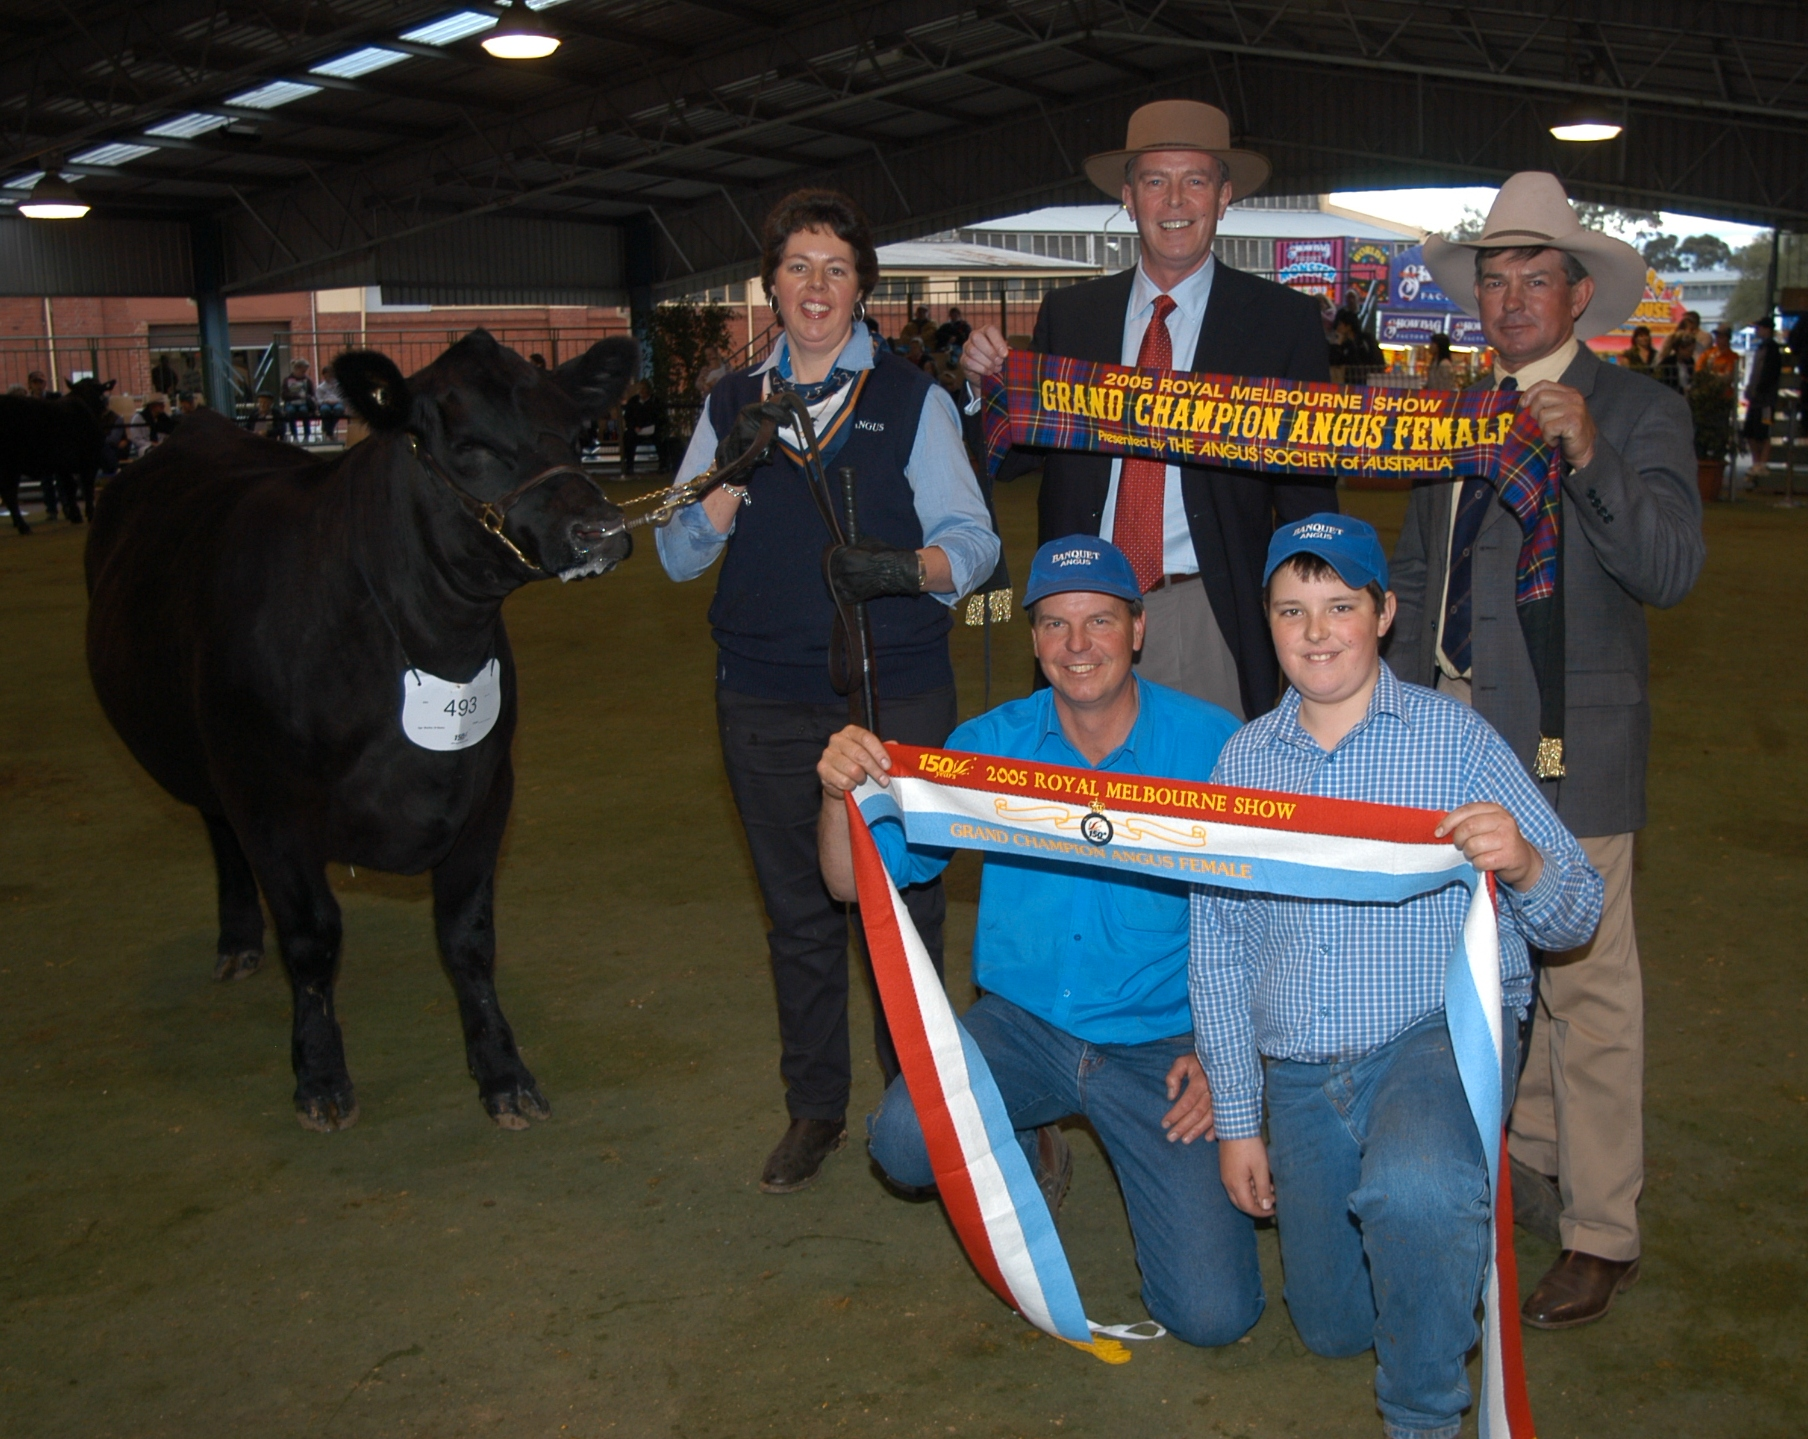 Grand Champion Angus Female 2005 Royal Melbourne